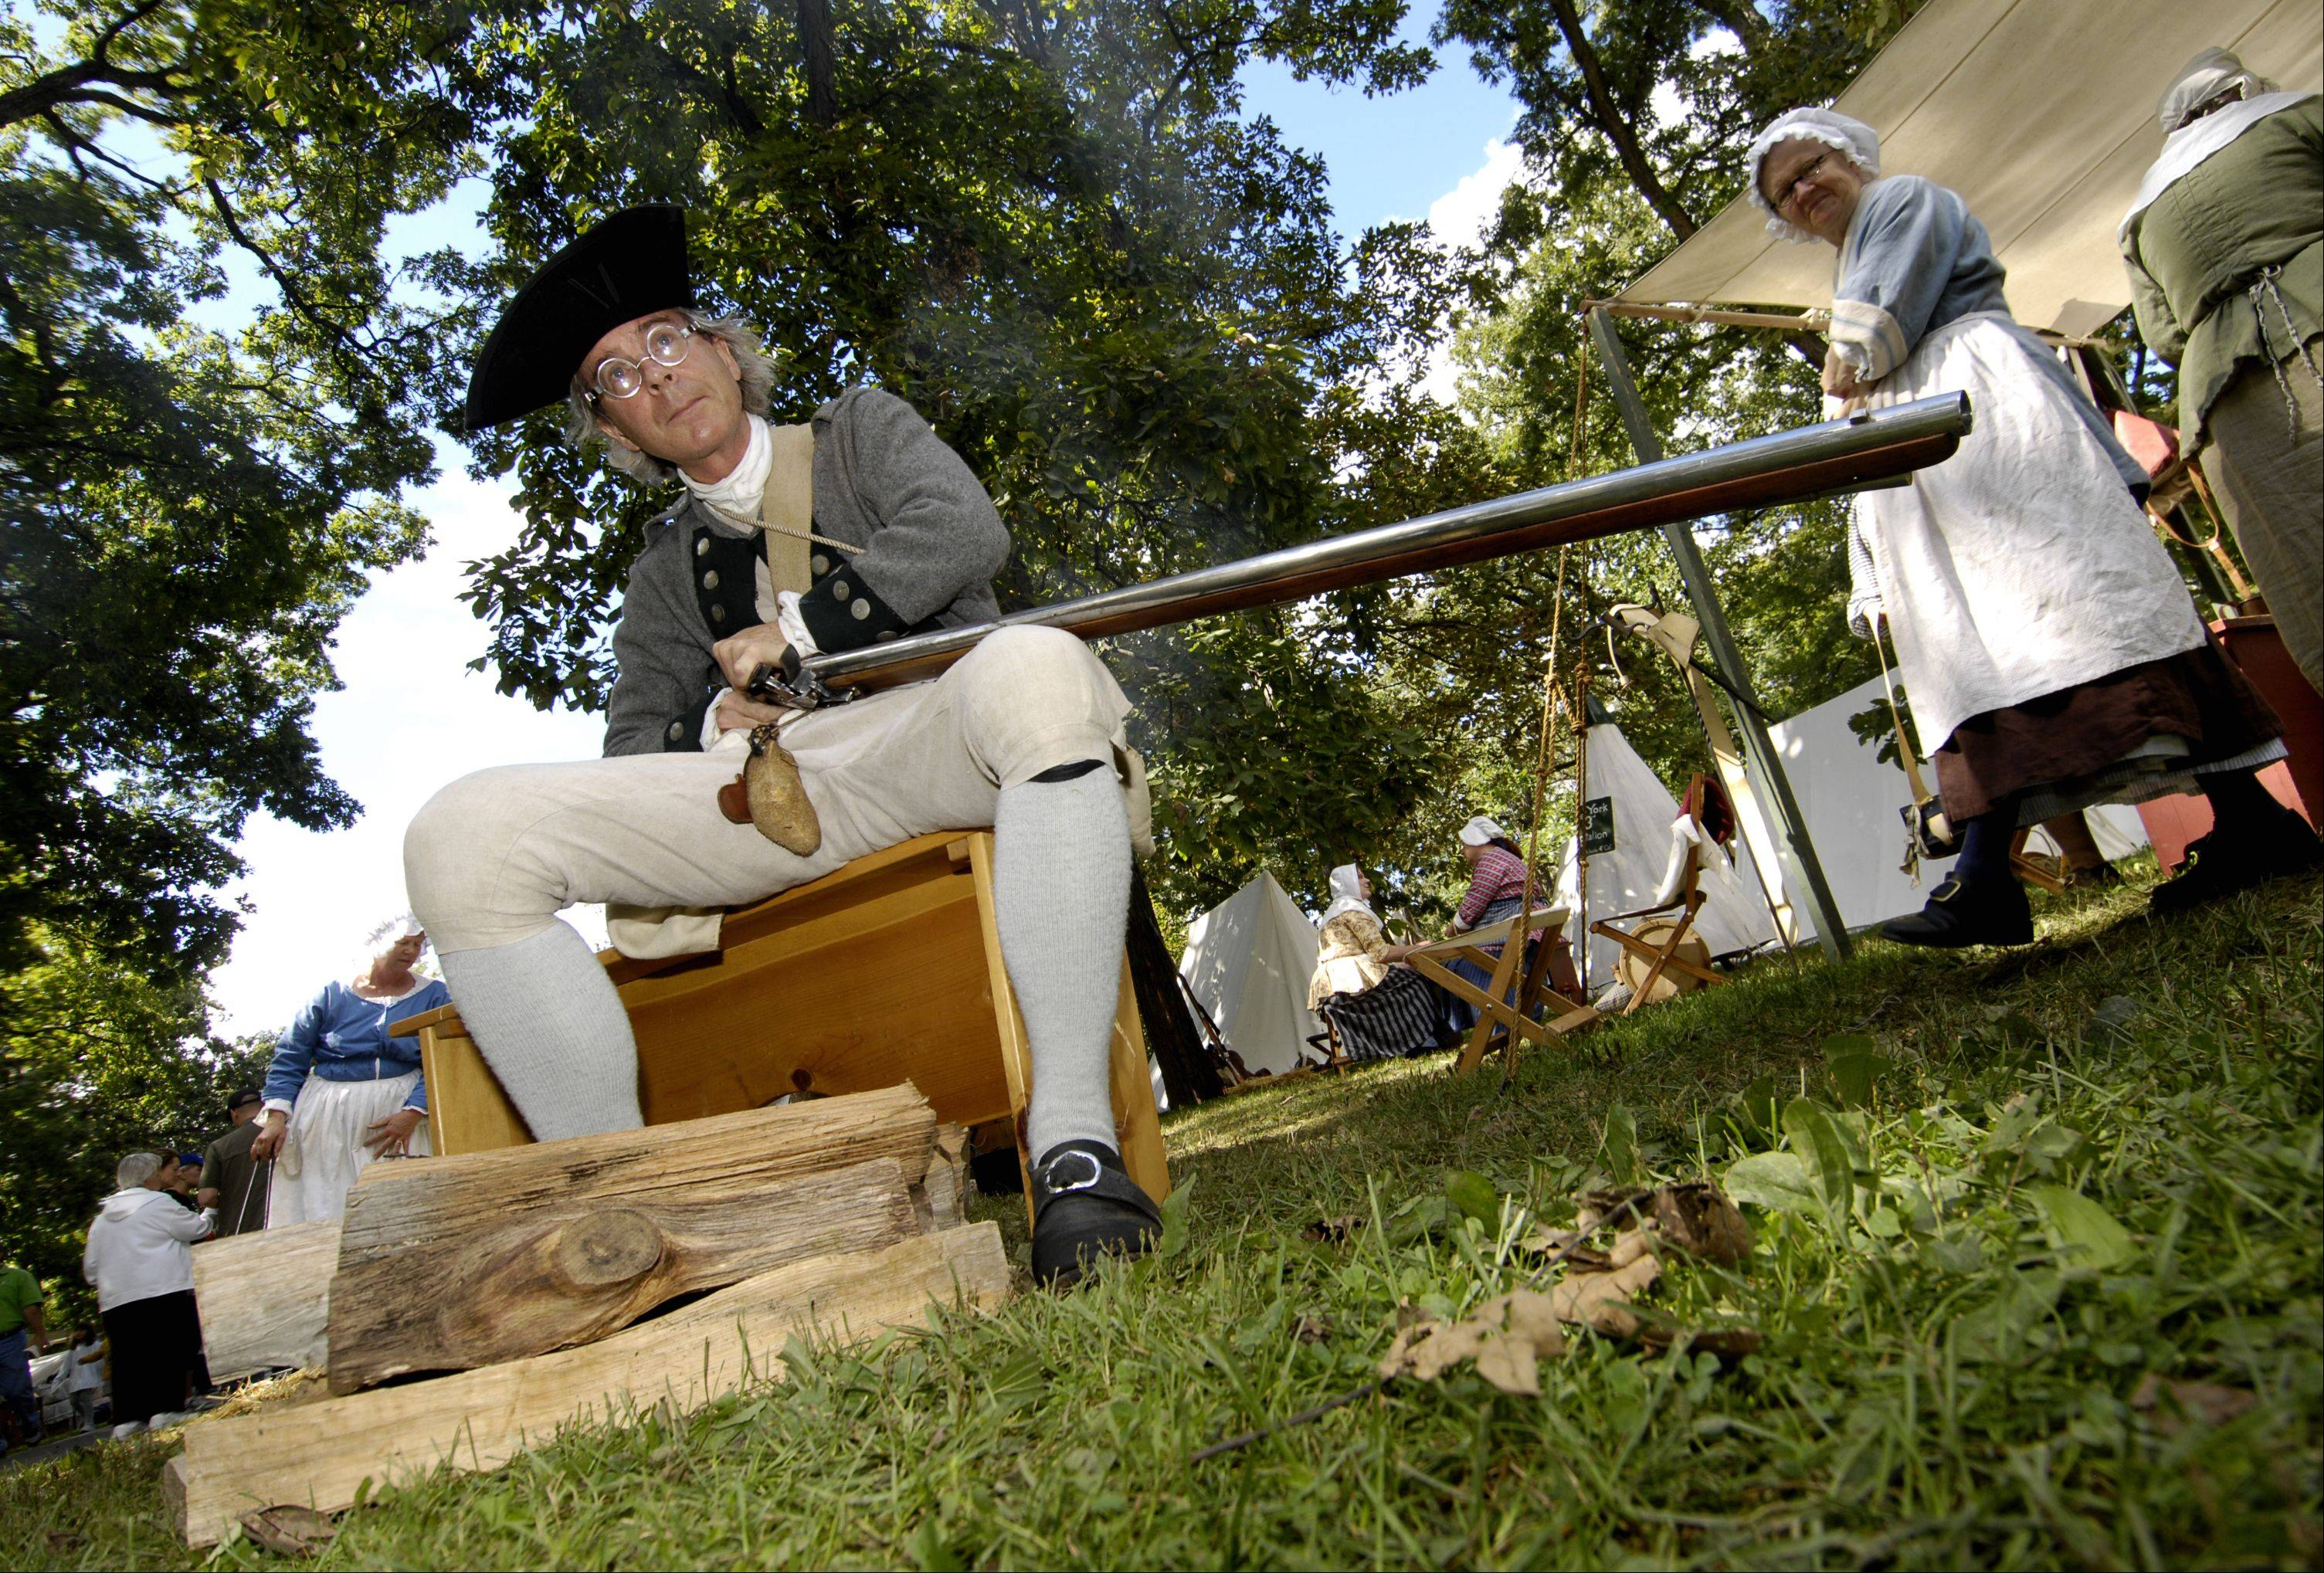 John Sutton, of Chicago, portrays a member of the Continental Army during a Revolutionary War re-enactment Sunday at Cantigny Park in Wheaton.